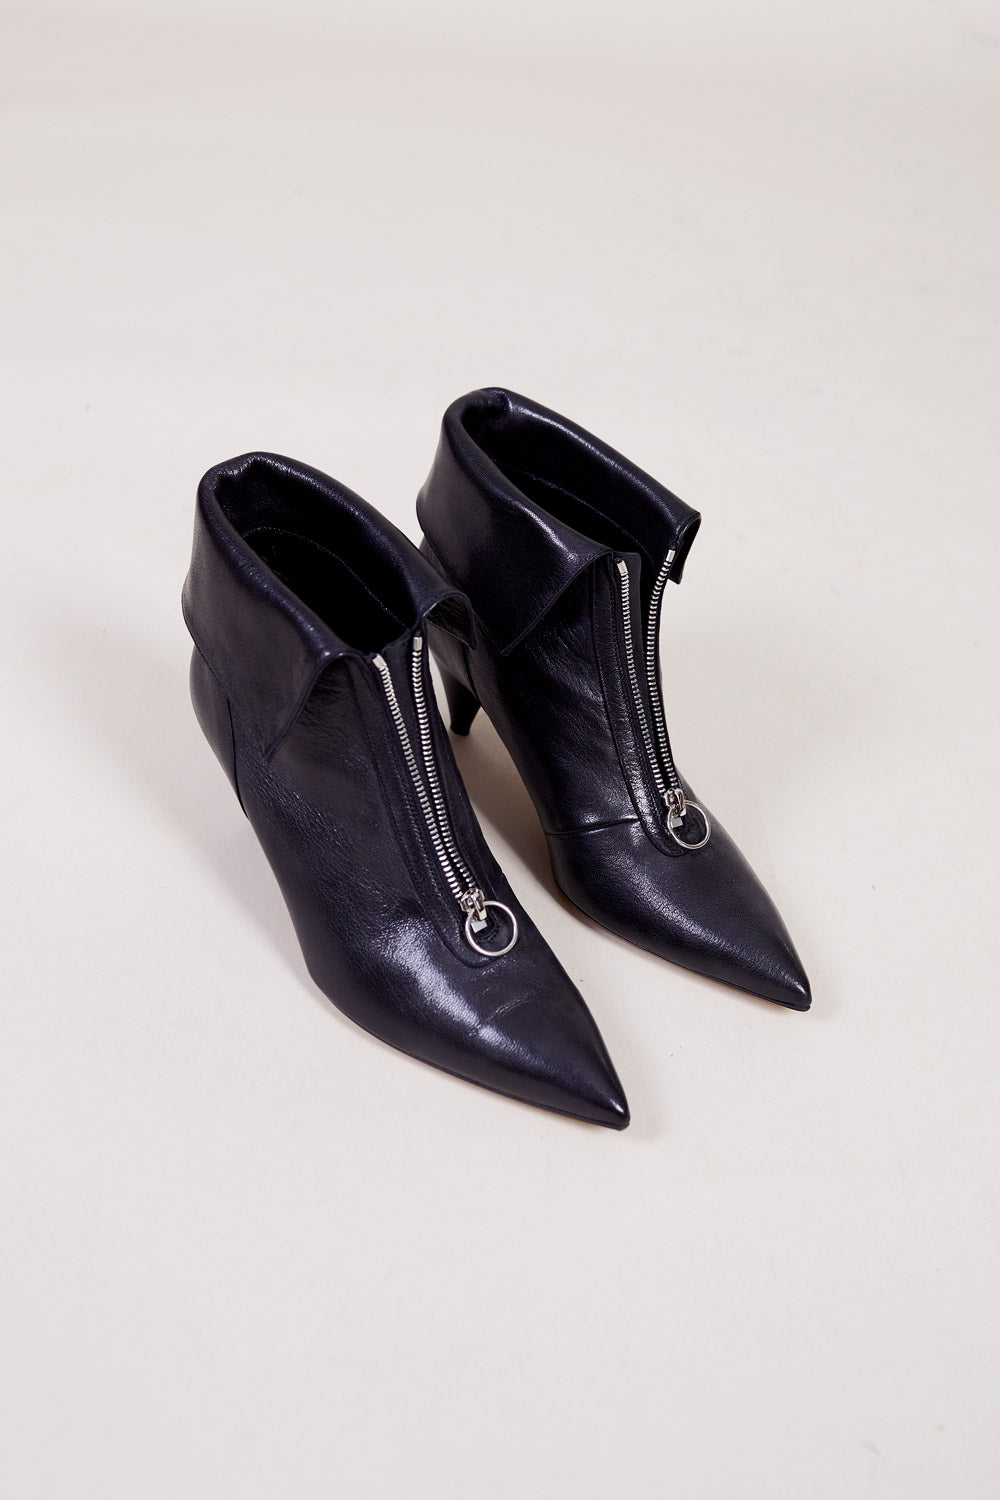 Rachel Comey Chen Boot in Black - Vert & Vogue